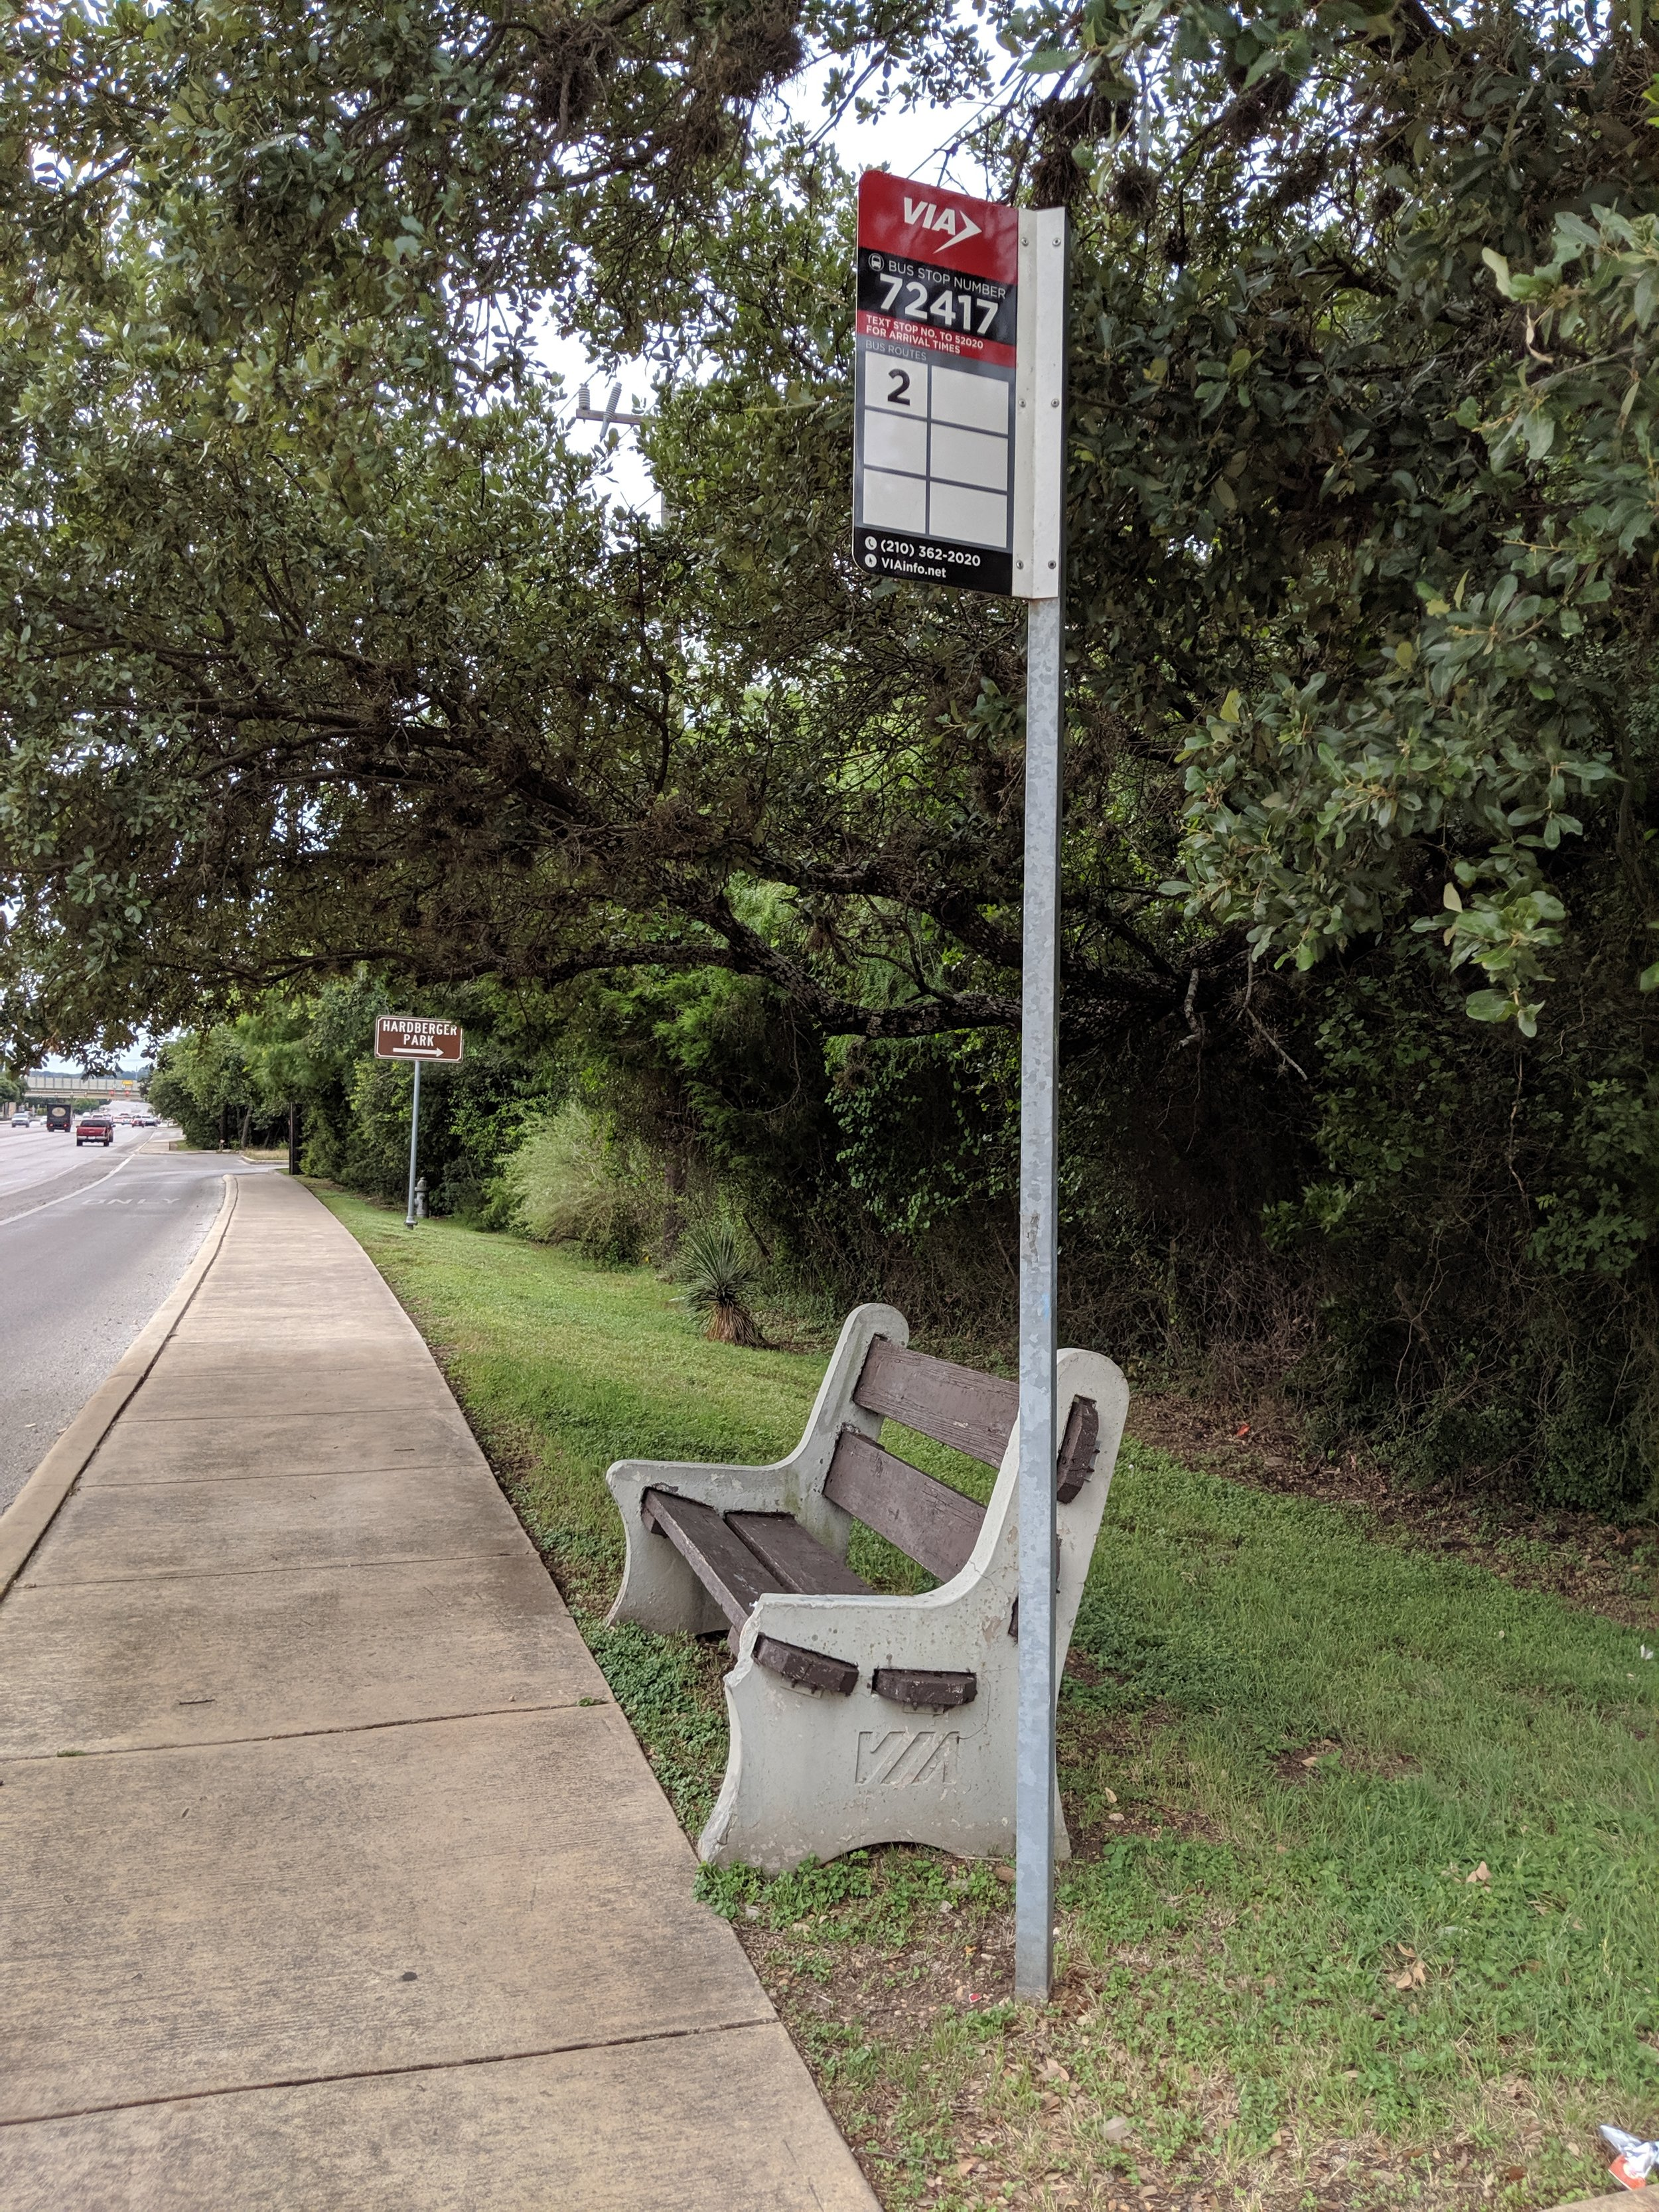 Public Transit - Via has bus stops on the Blanco Road and NW Military Hwy sides.Blanco Road stopsBus #2 72417 & 72857NW Military Hwy StopBus #97 97096